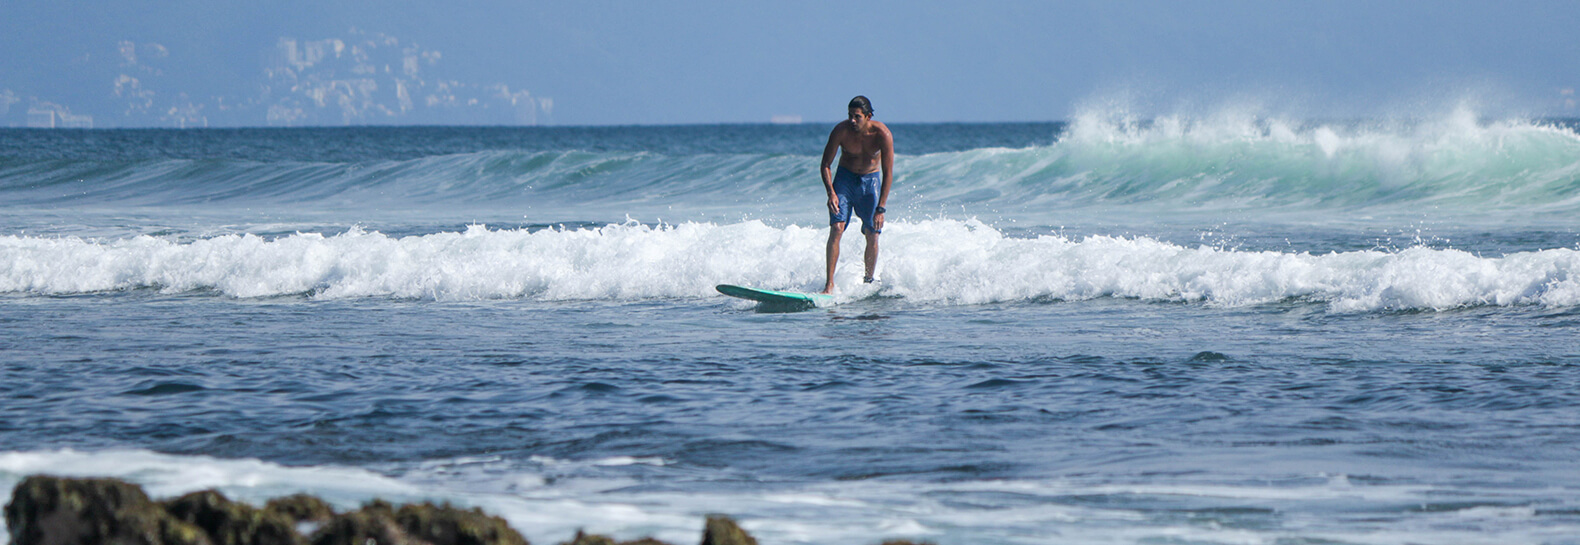 Take a Surfing Lesson Punta Mita Mexico